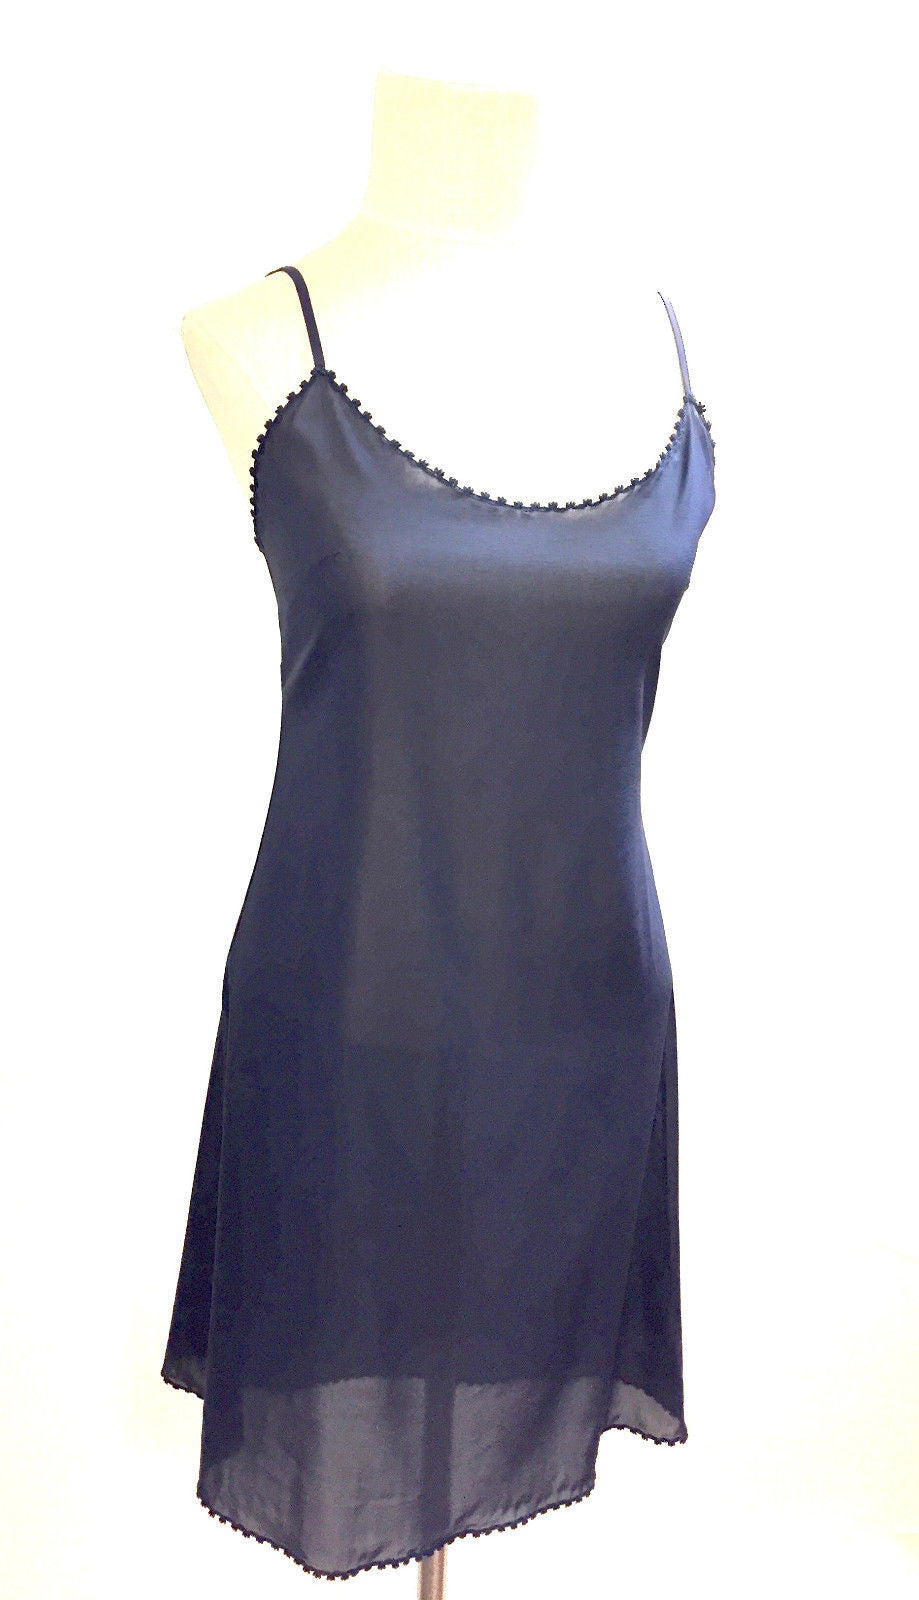 acfbea718d61 ... bisbiz.com CHANEL Orchid & Navy Sleeveless Knit Dress with Navy Silk  Under-Slip ...